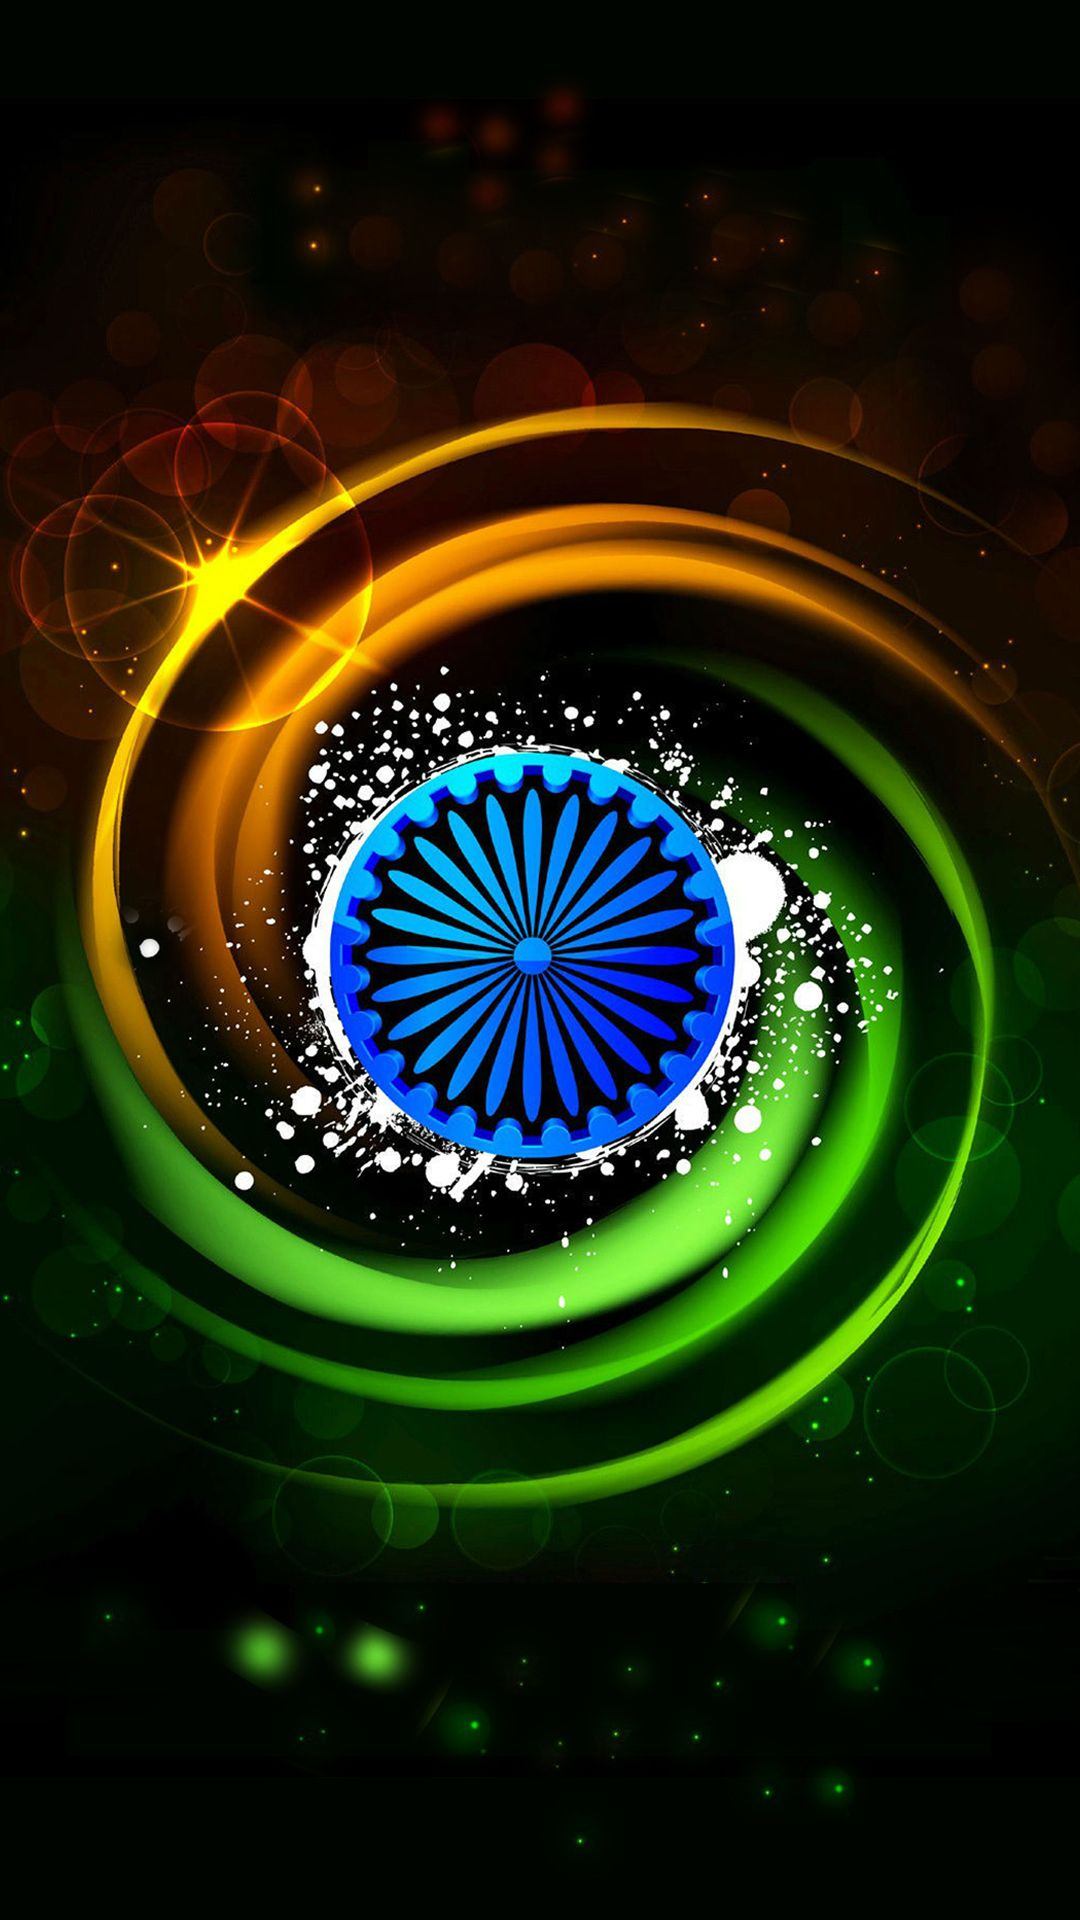 india flag for mobile phone wallpaper 08 of 17 - tiranga in 3d